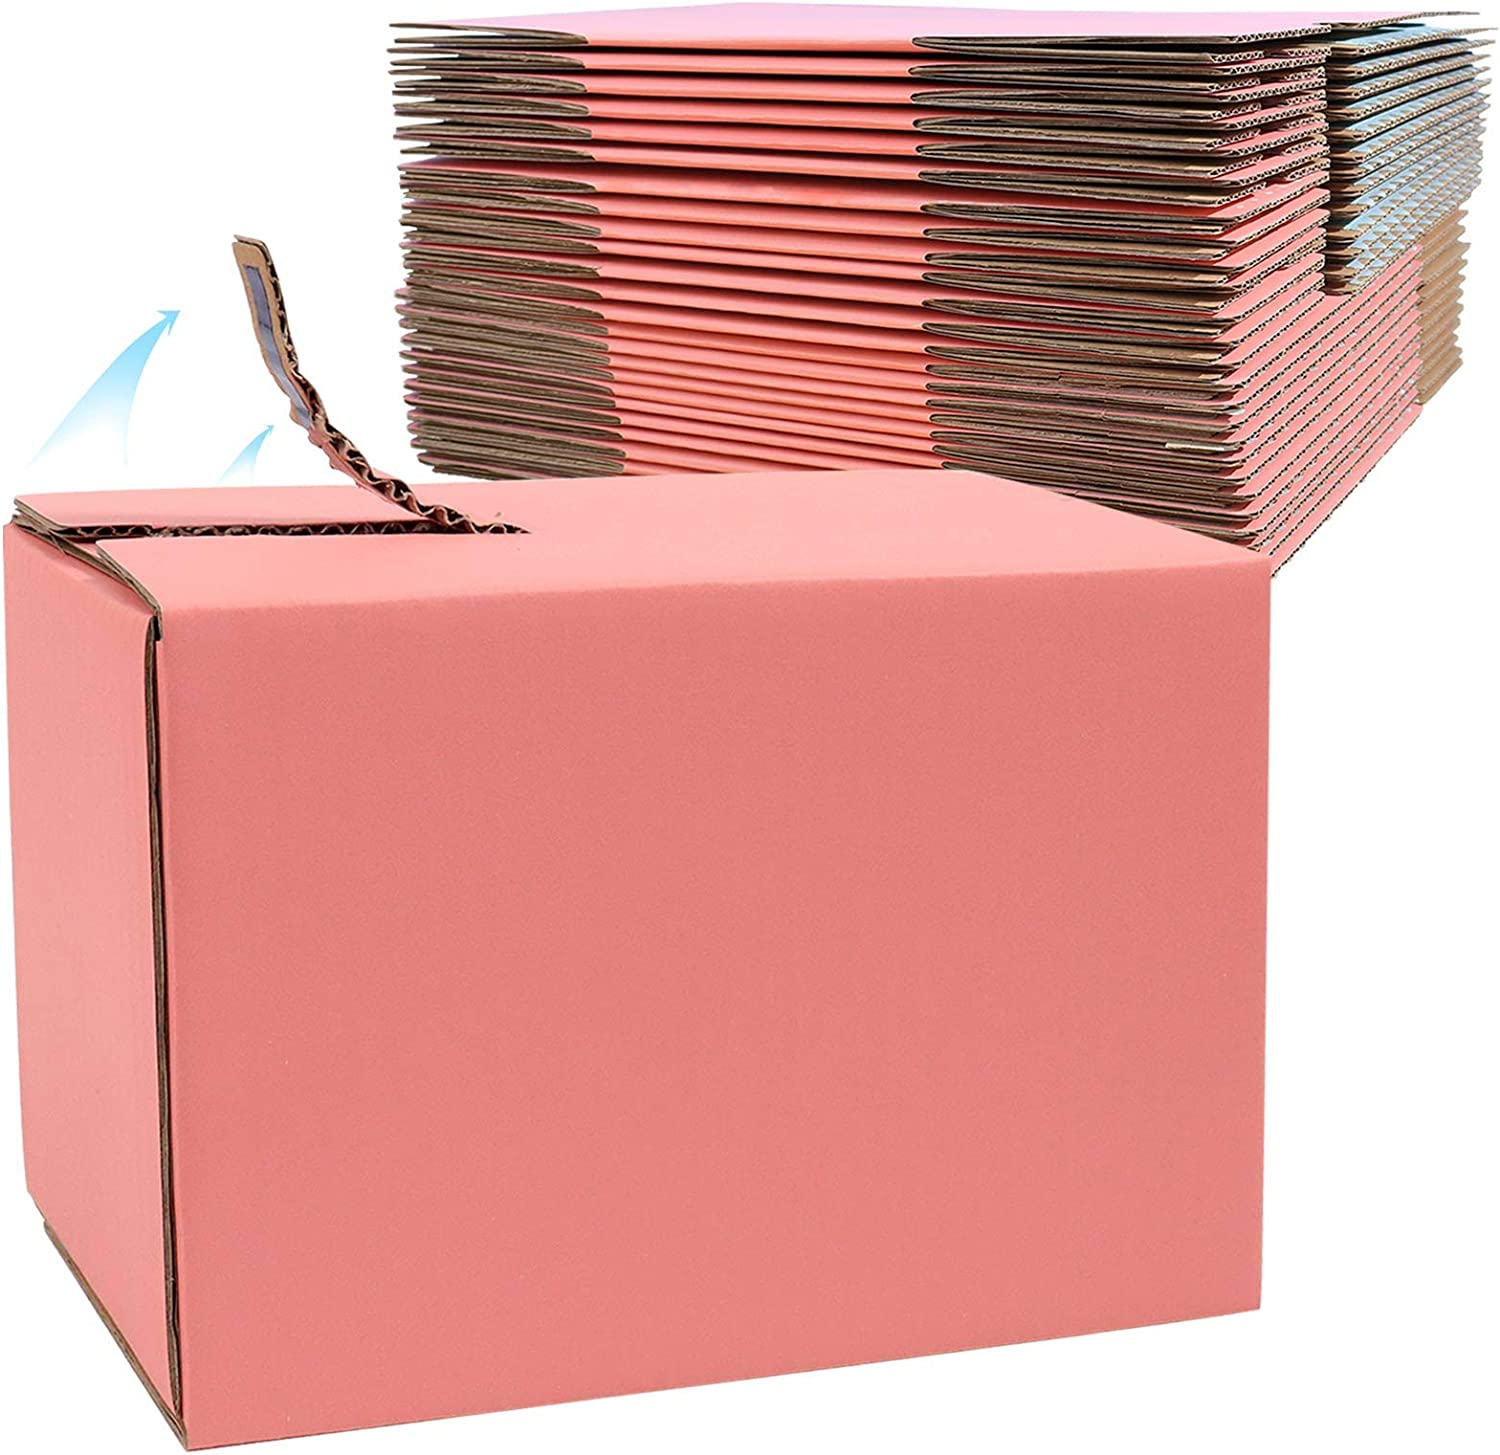 Price reduction Shipping supreme Mailer Corrugated Cardboard Boxes Zipper Pack Pac 25